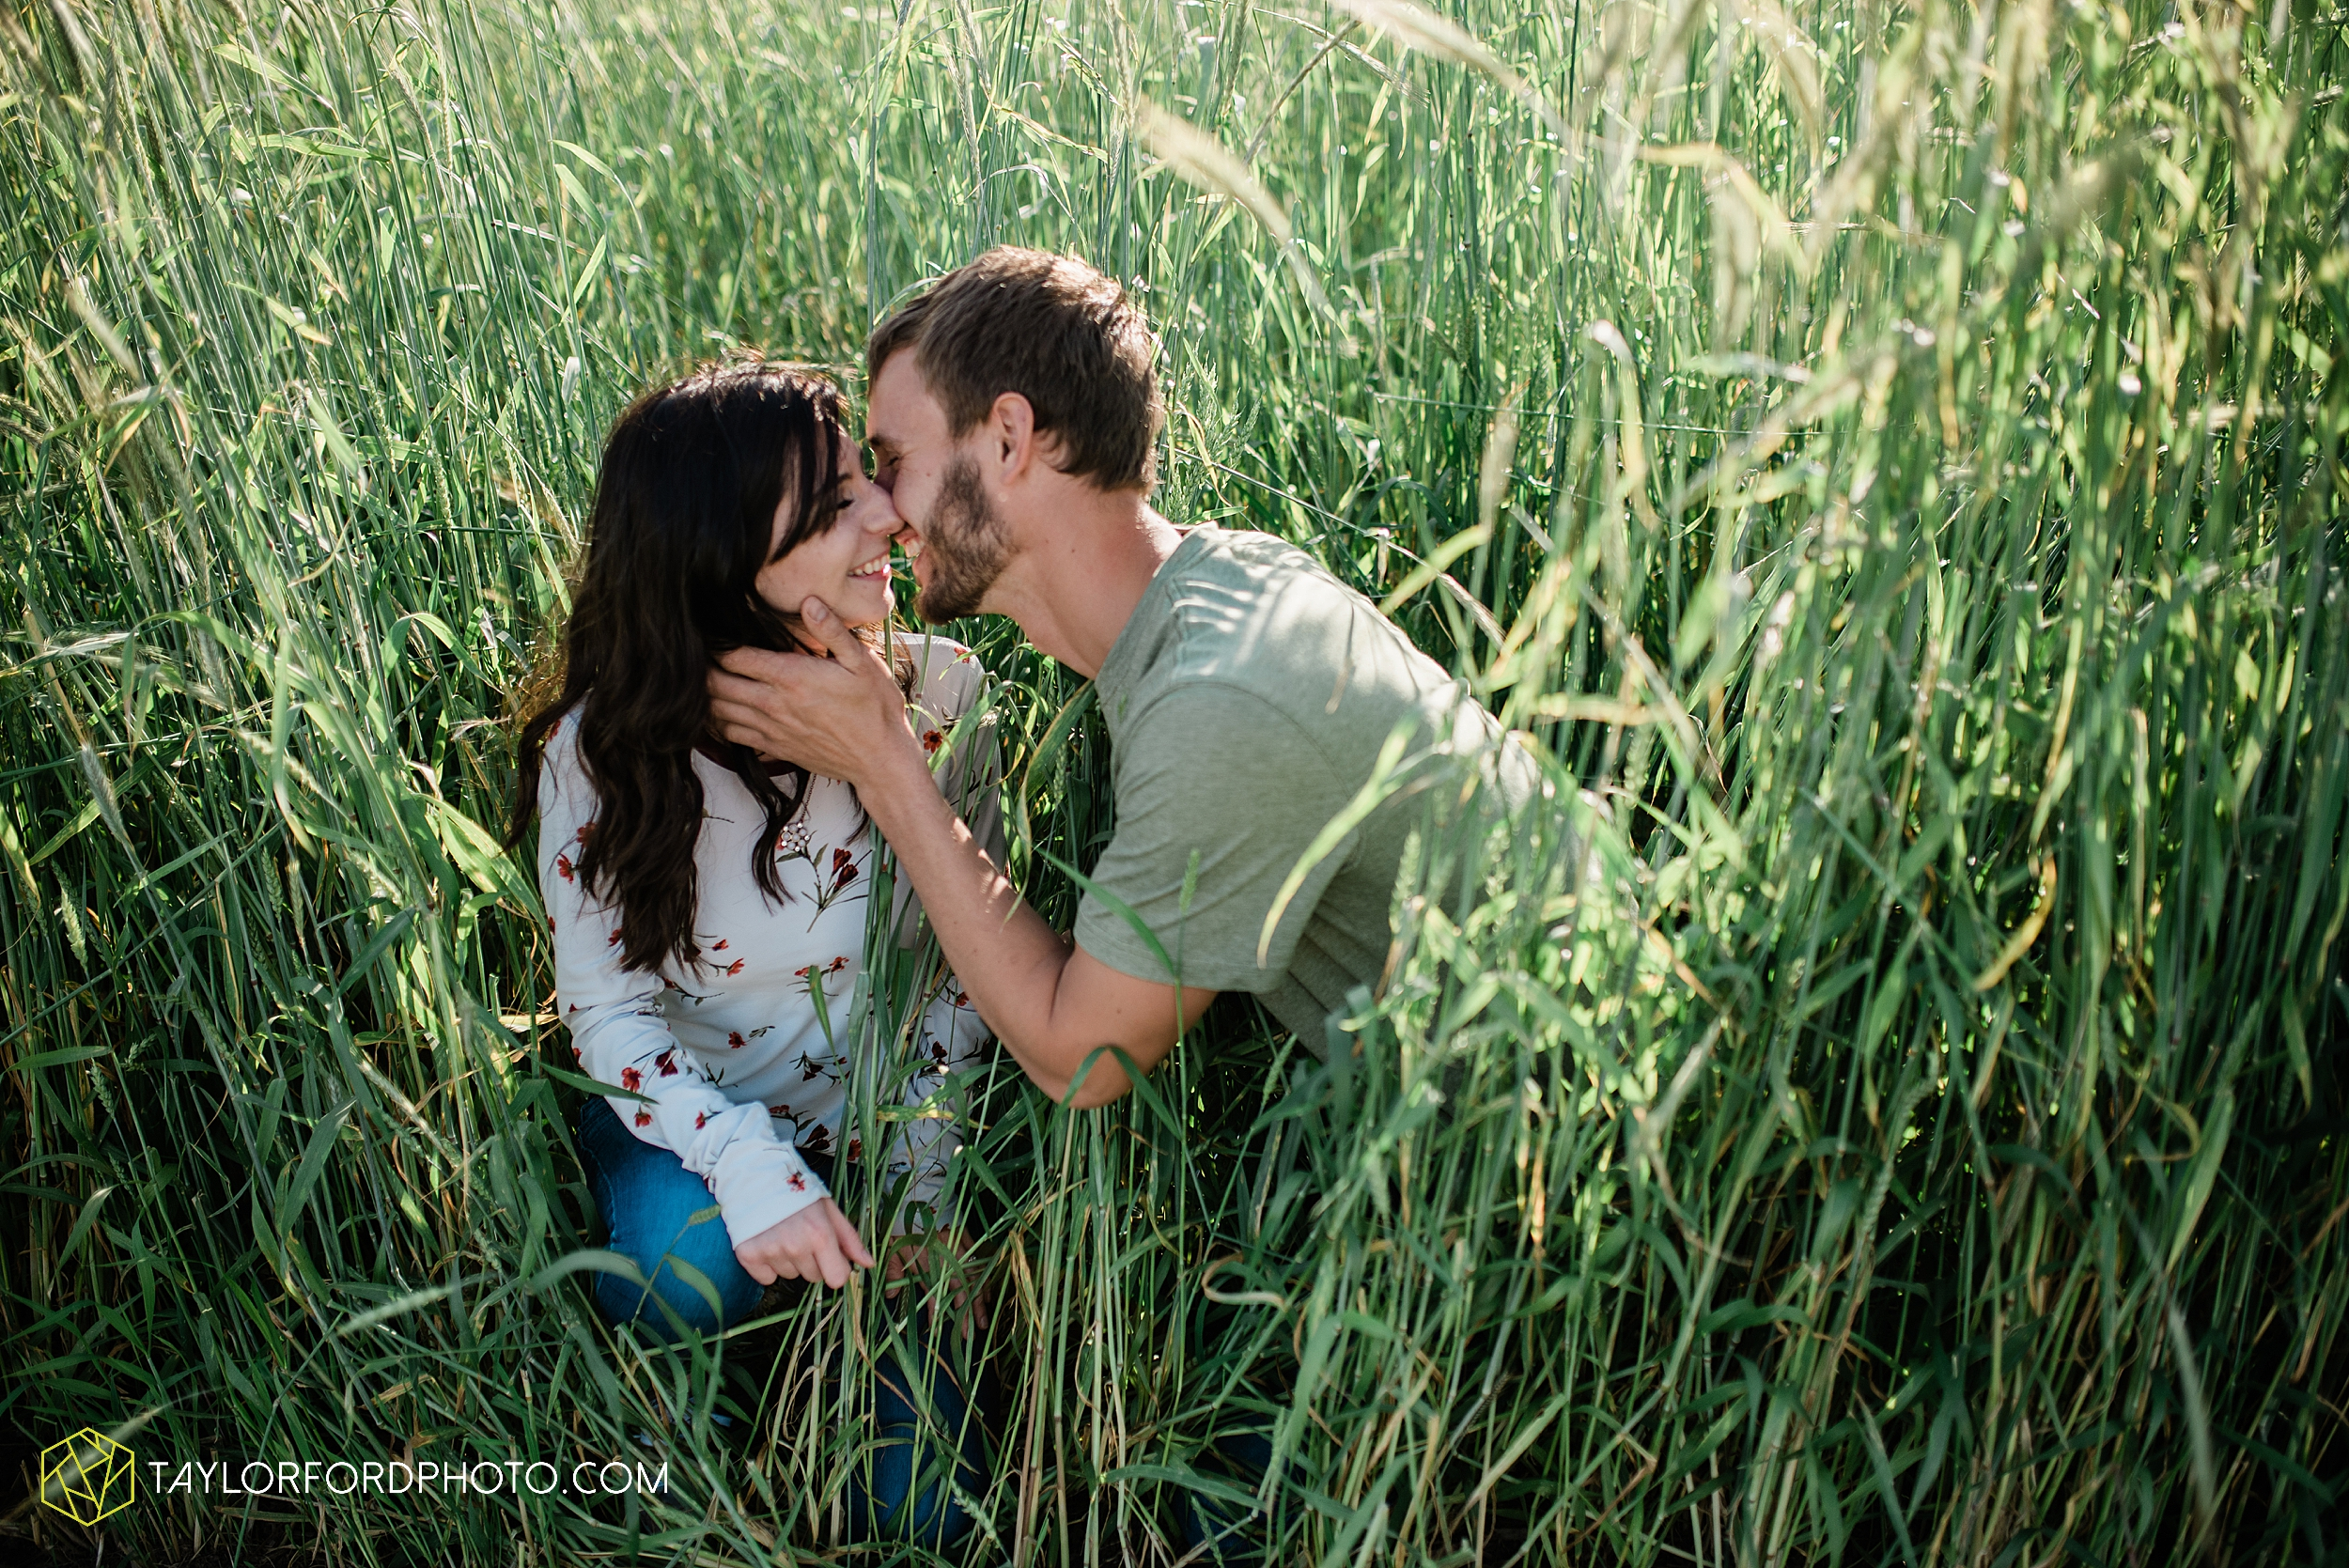 celina-mercer-county-ohio-farm-woods-engagement-photographer-photography-taylor-ford-hirschy-photographer_2987.jpg